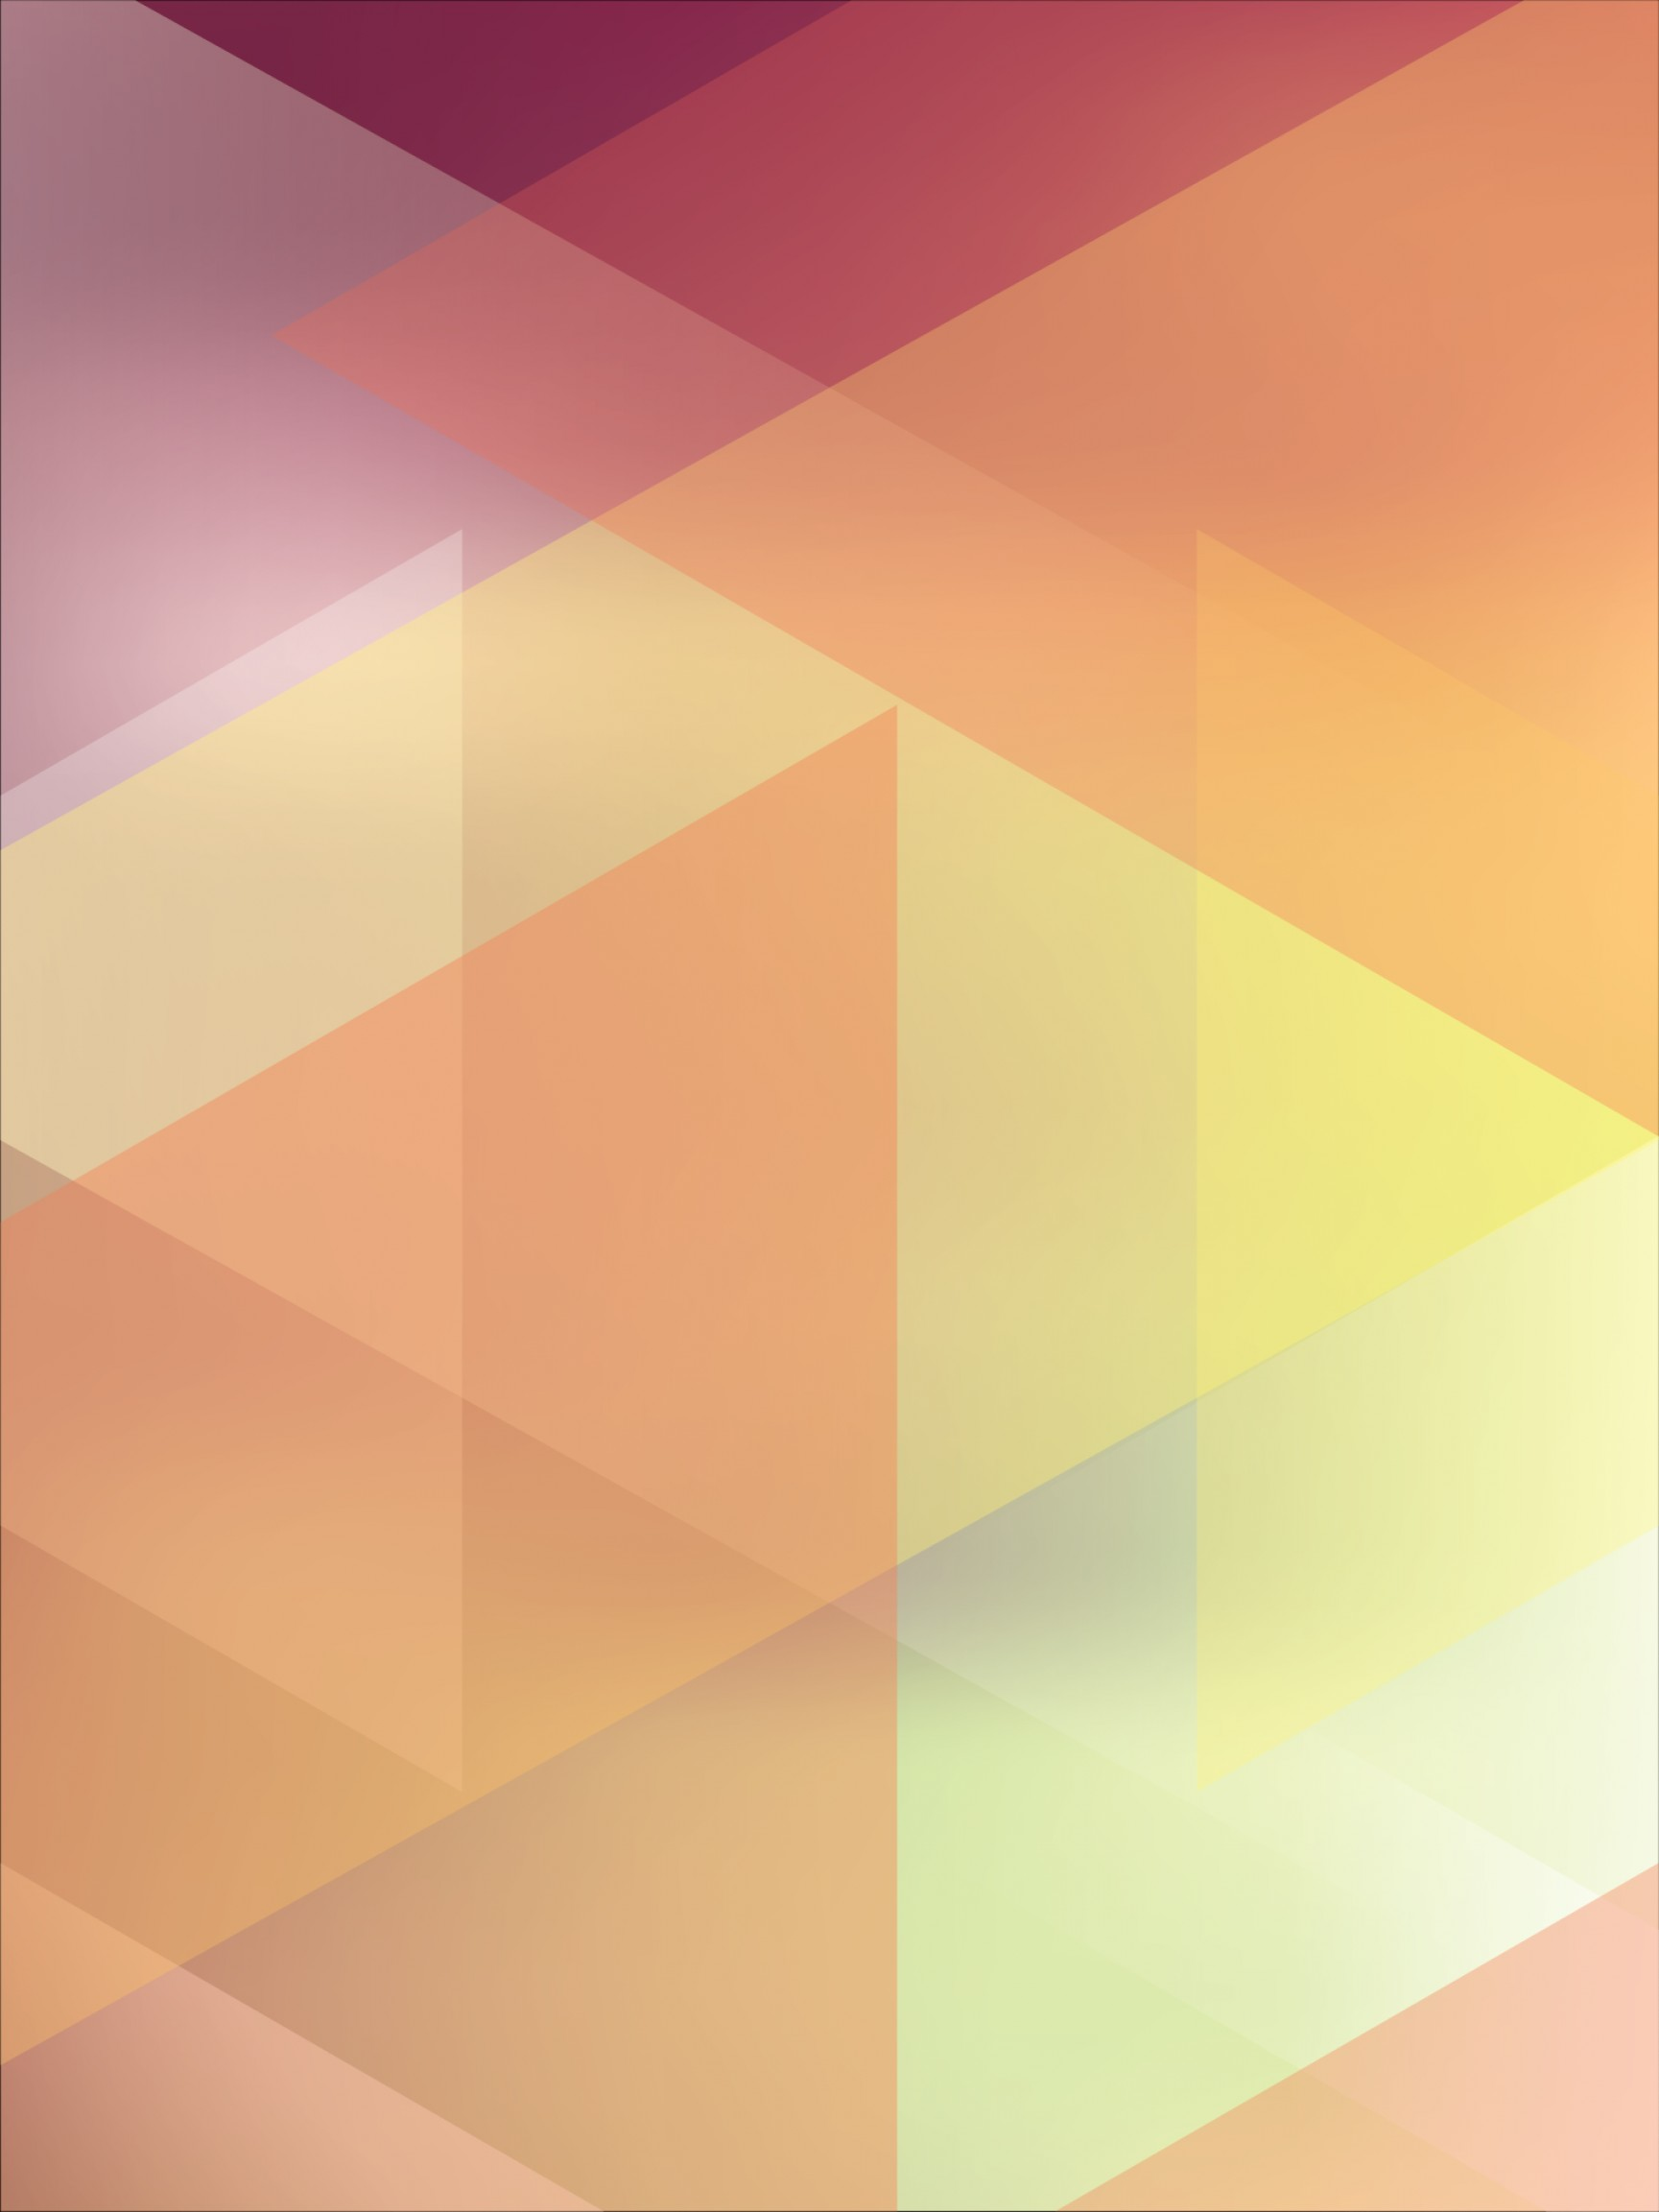 Vector Geometric Abstract Shapes Phone Wallpapers: Abstract Prism Mobile Phone Wallpaper